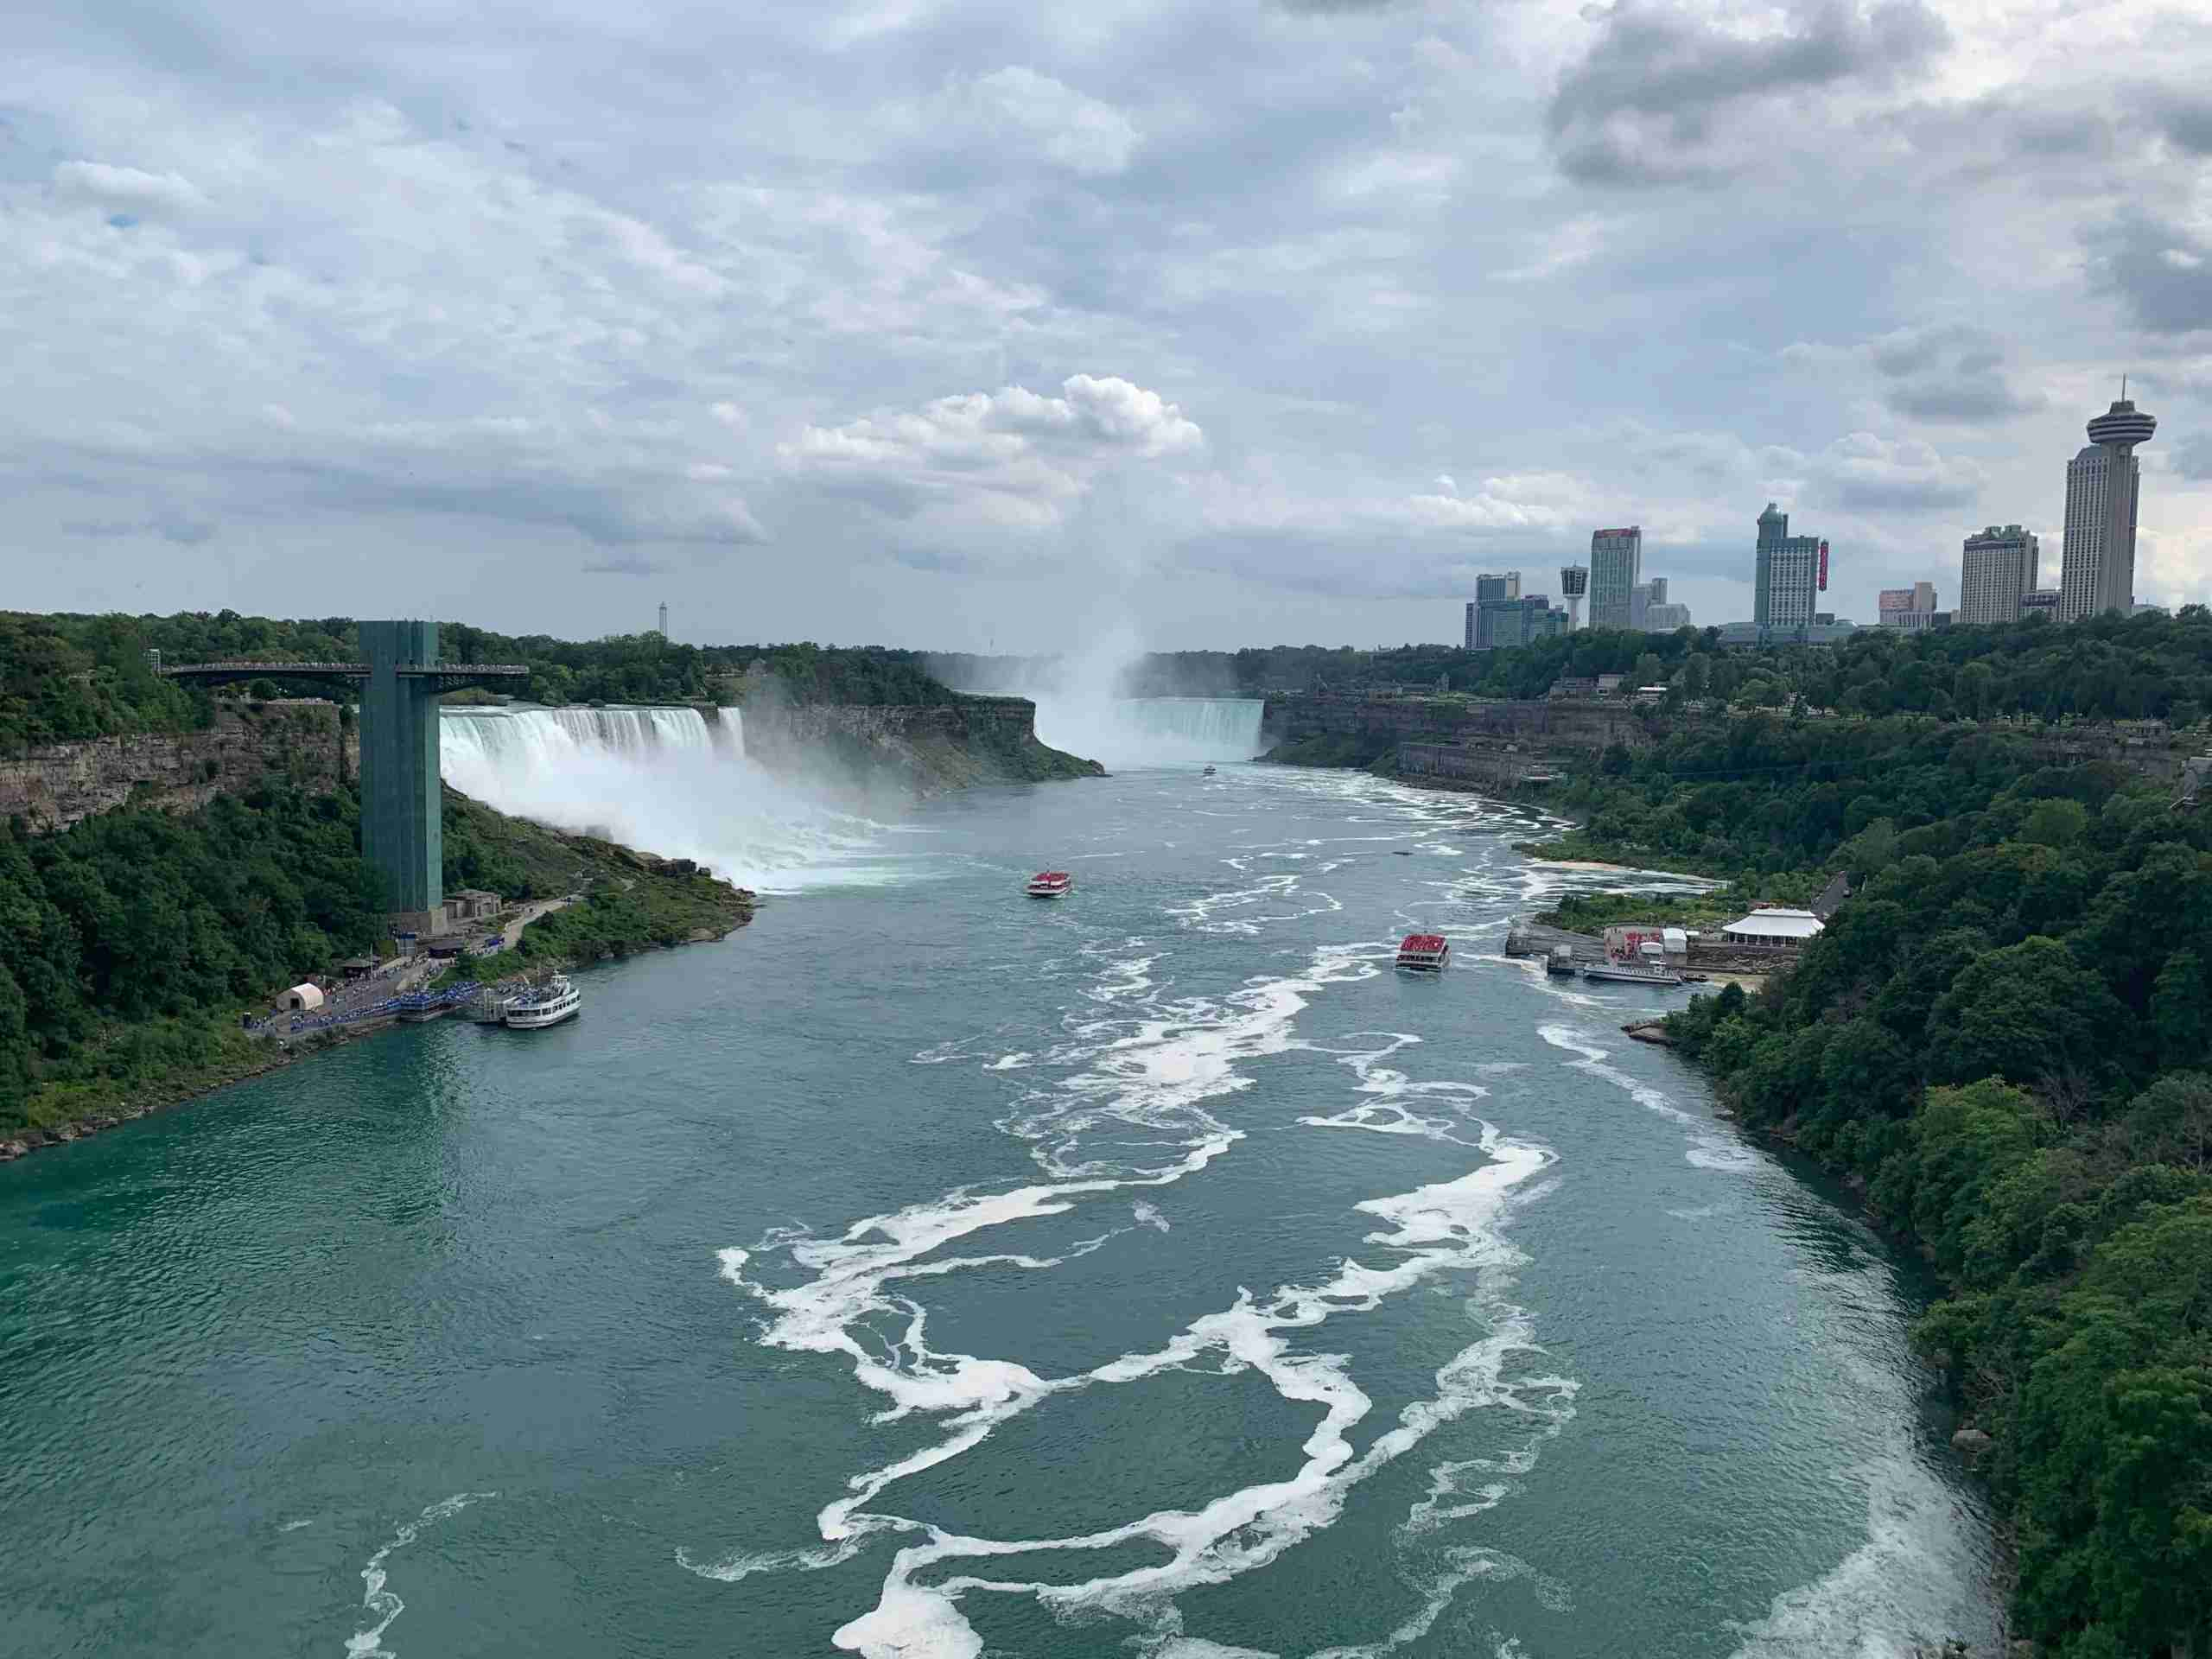 Niagara Falls on the U.S./Canada border July 2019. (Photo by Clint Henderson/The Points Guy)